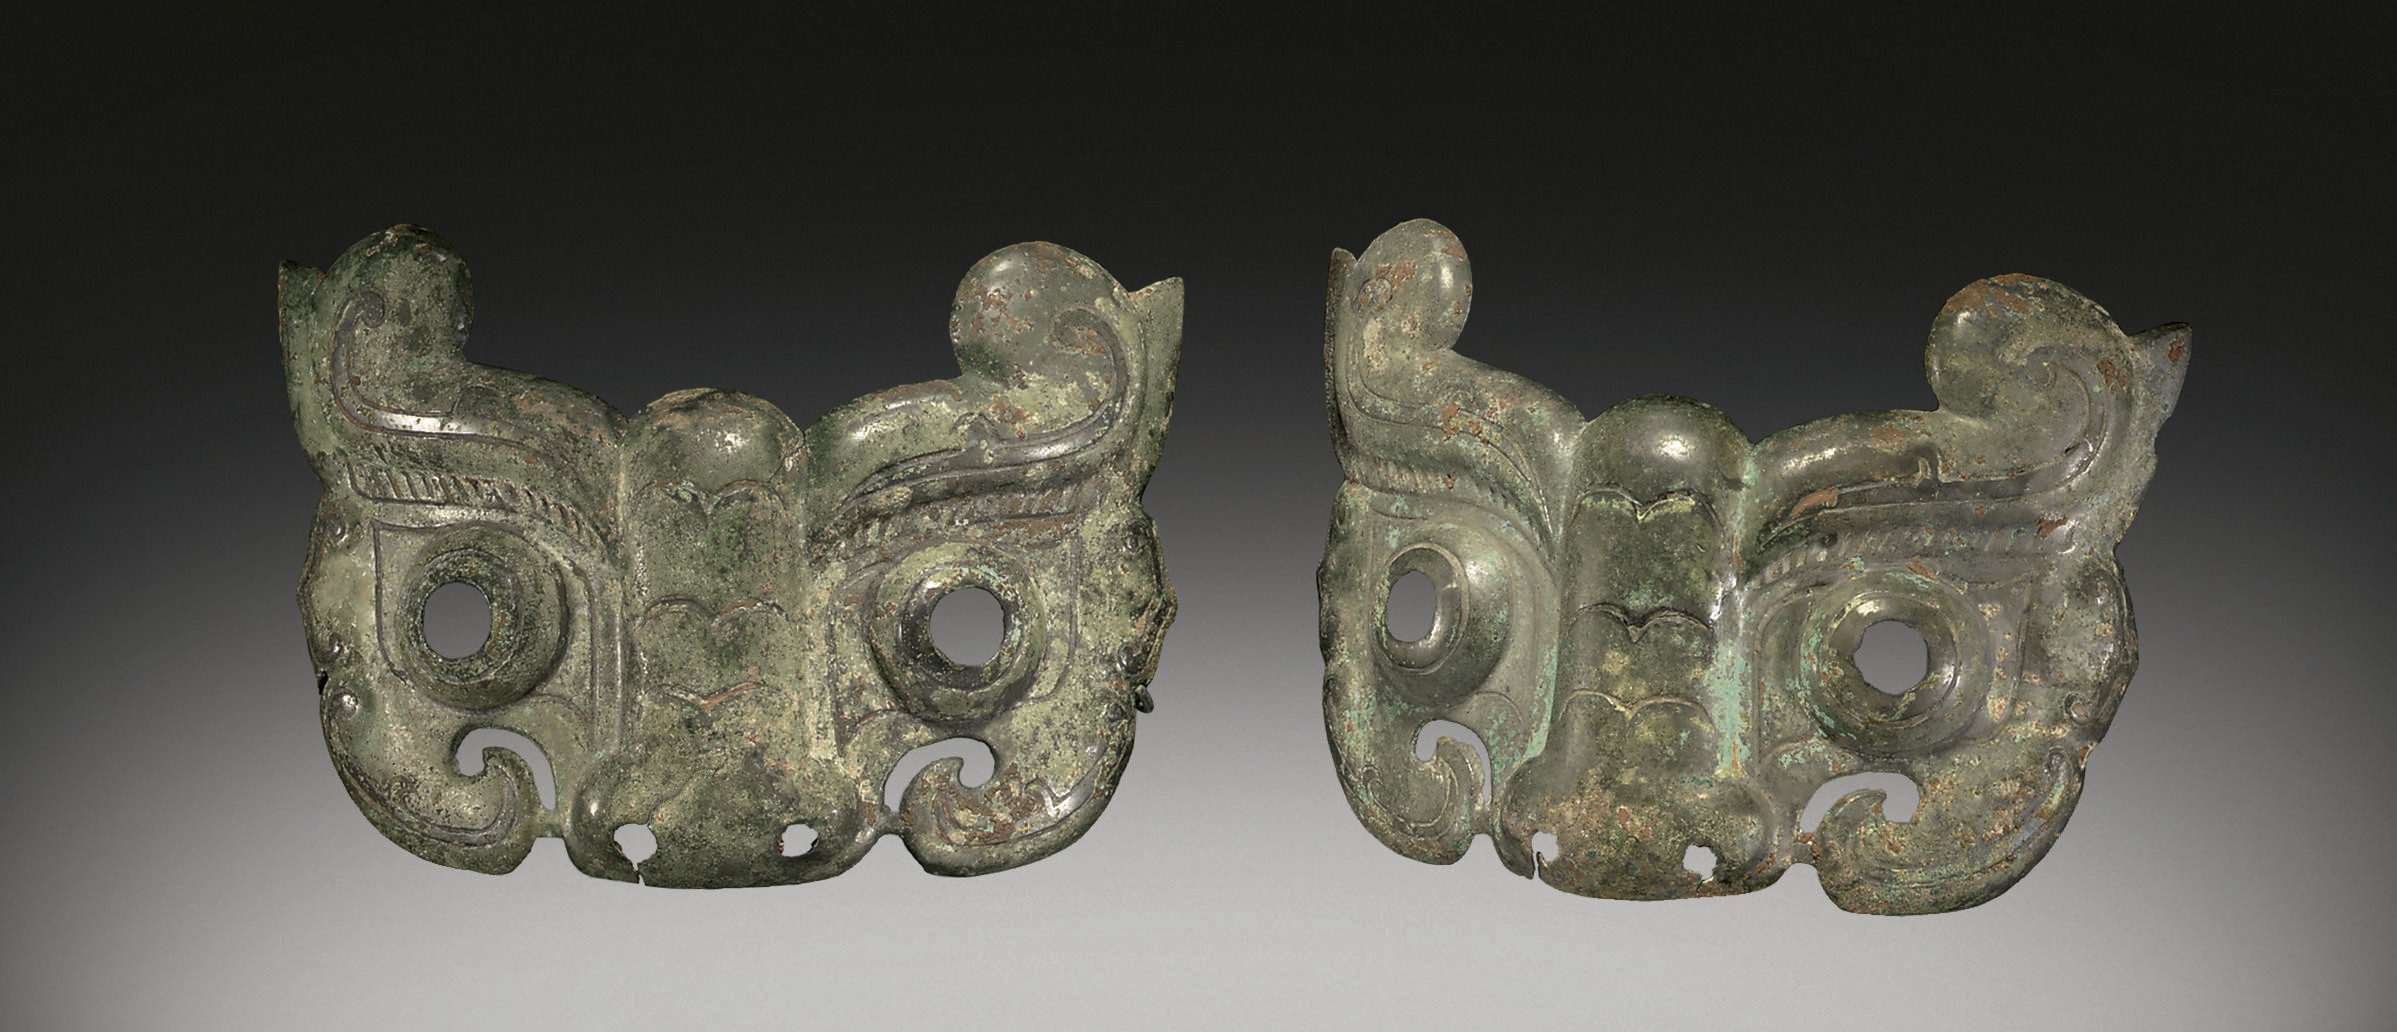 A RARE PAIR OF BRONZE MASK-FOR